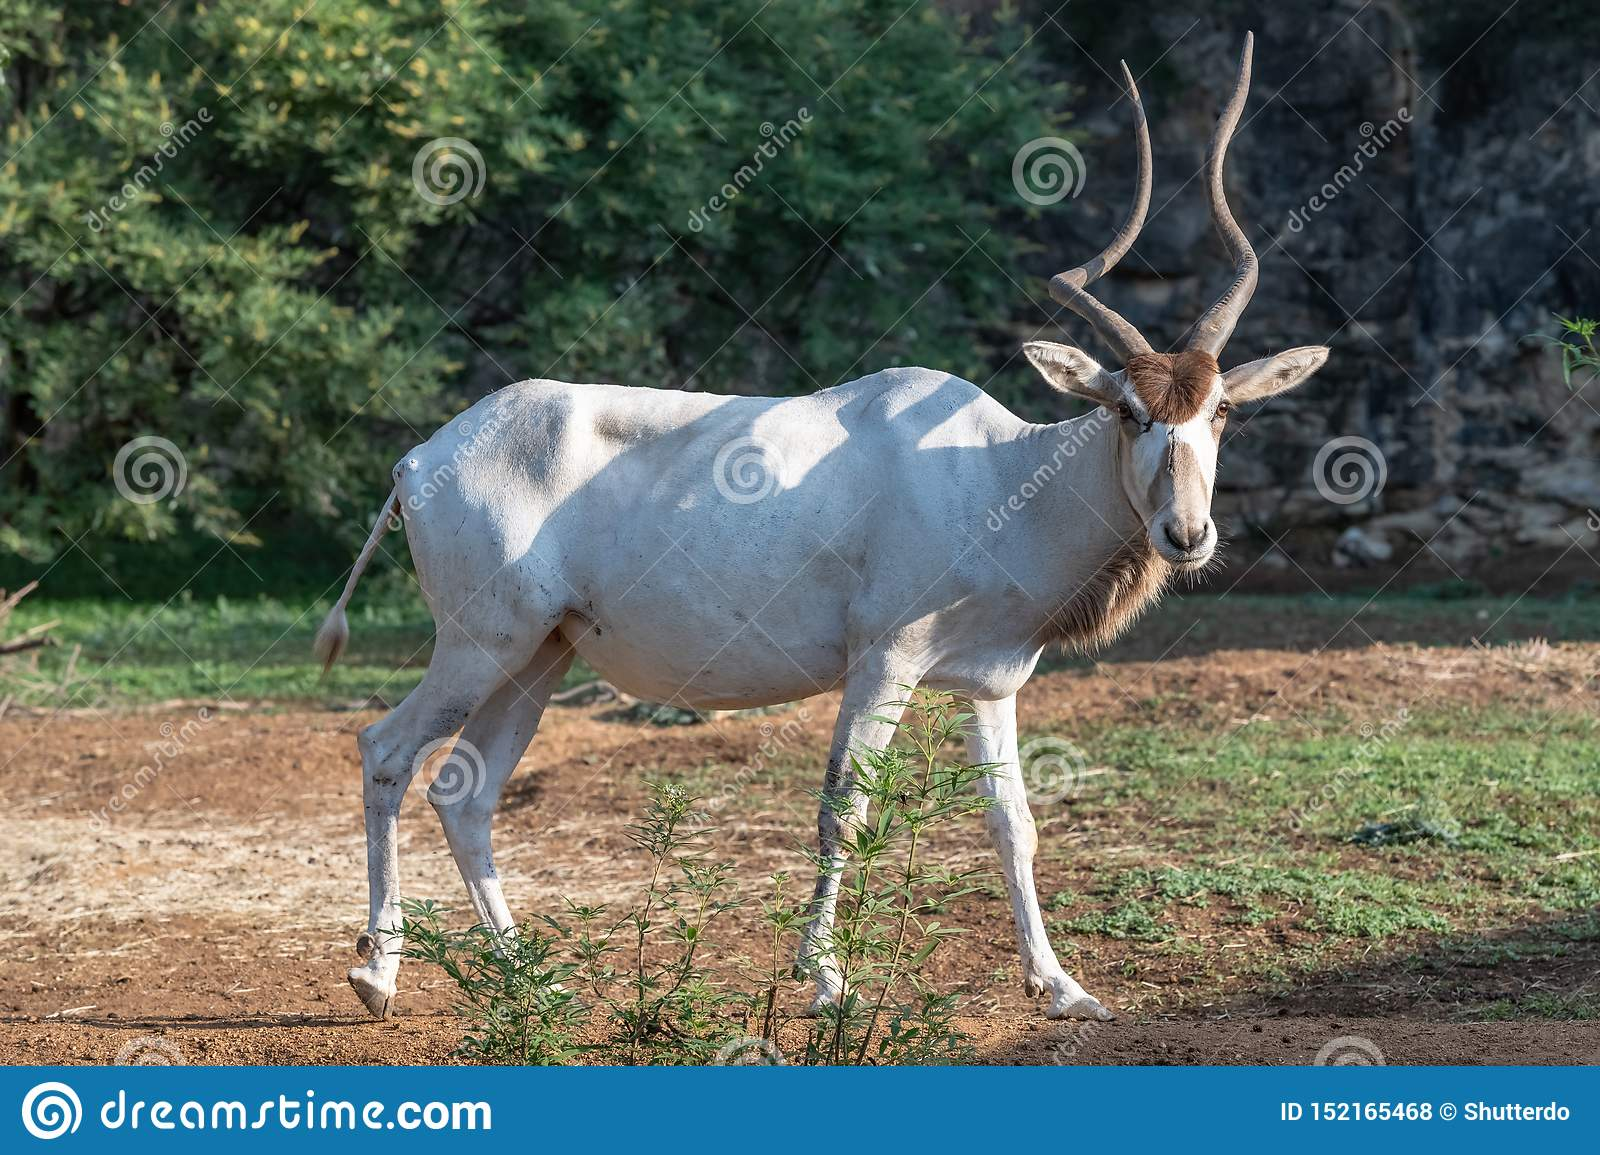 Full body of addax white antelop looking directly